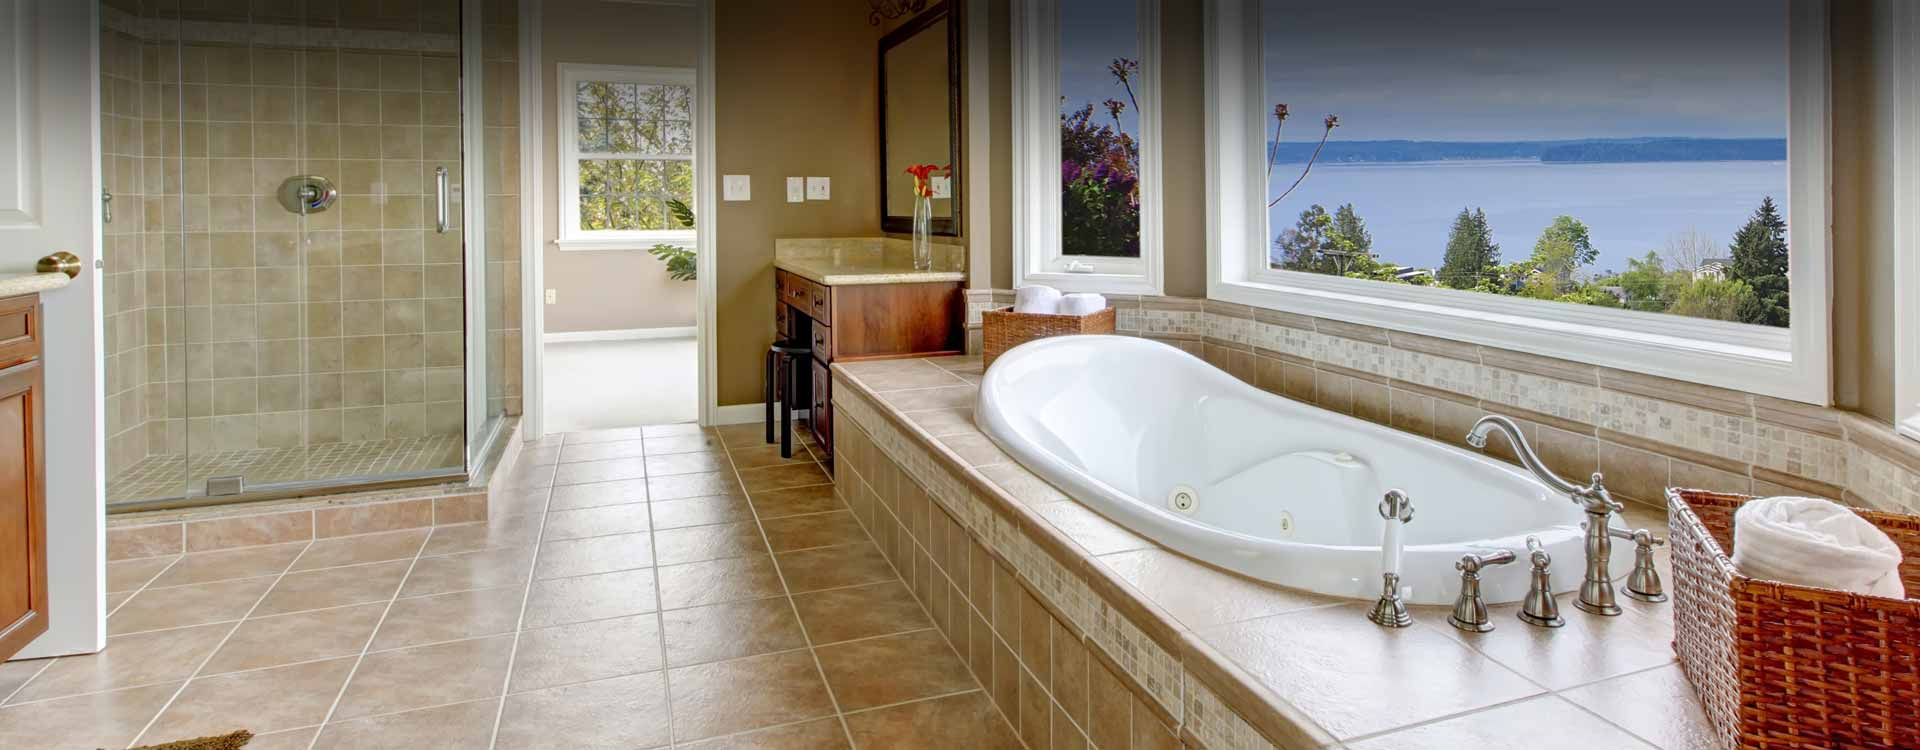 tile-grout-cleaning-home-2